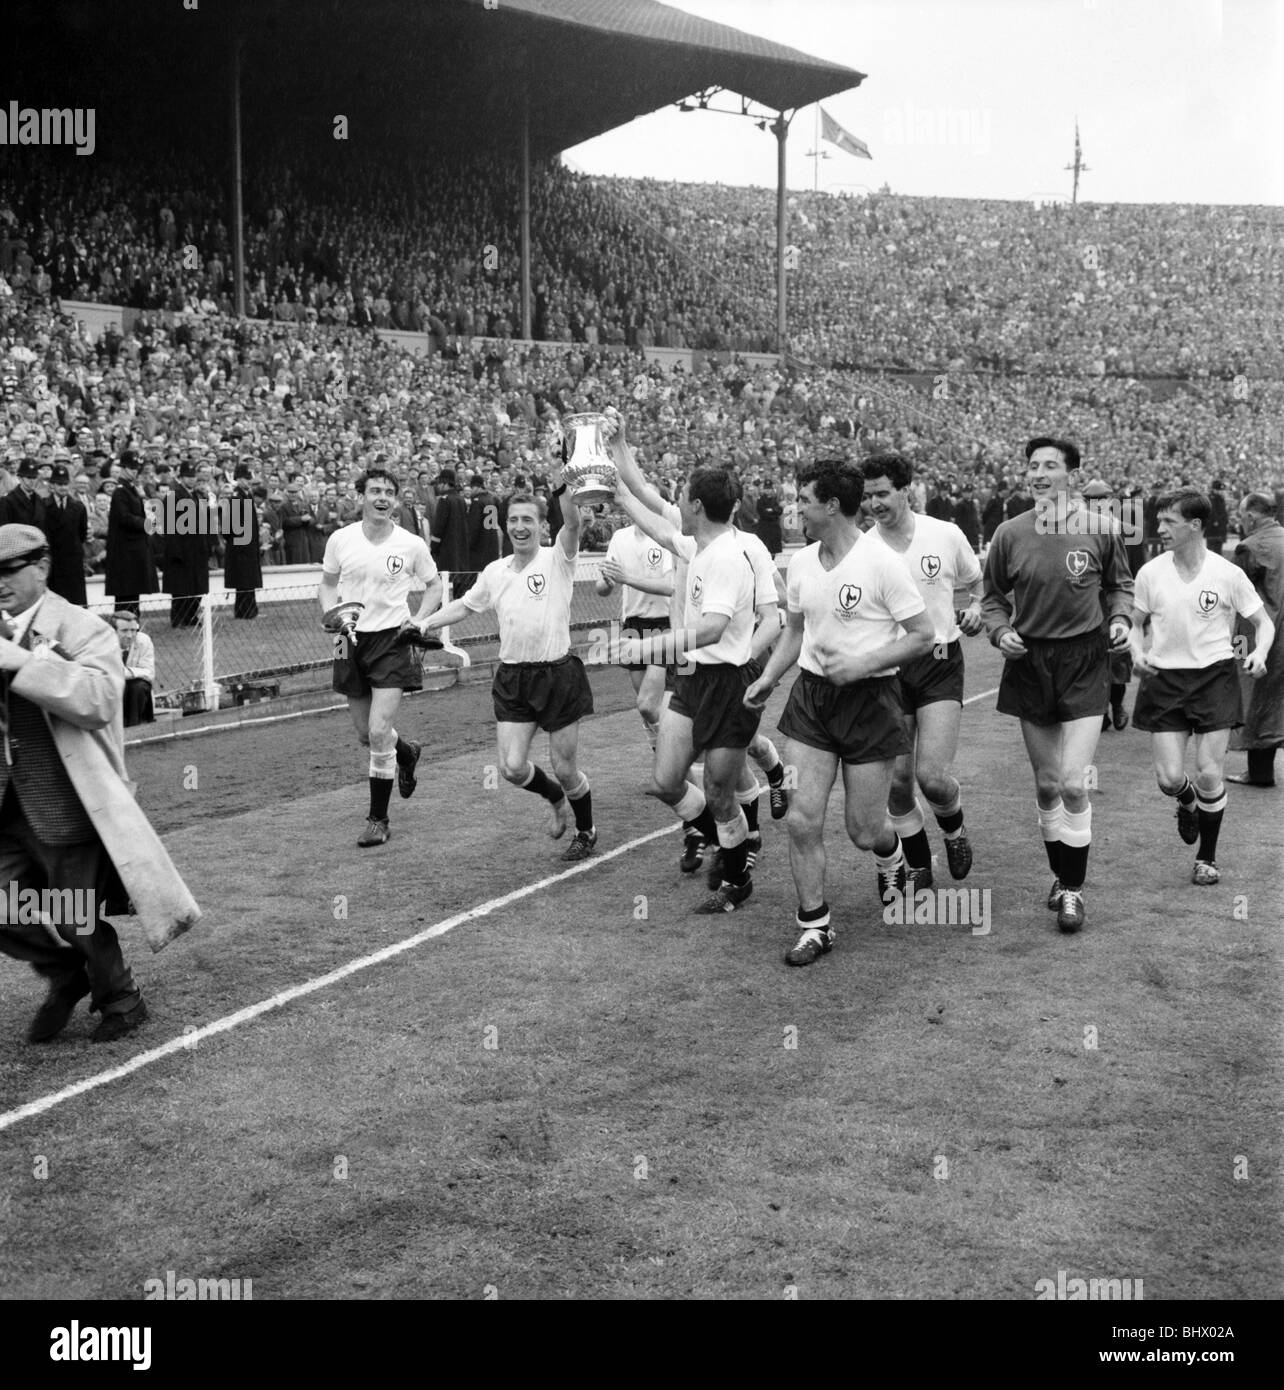 Tottenham Vs Ajax Tickets Away End: Tottenham Hotspur 1962 Stock Photos & Tottenham Hotspur